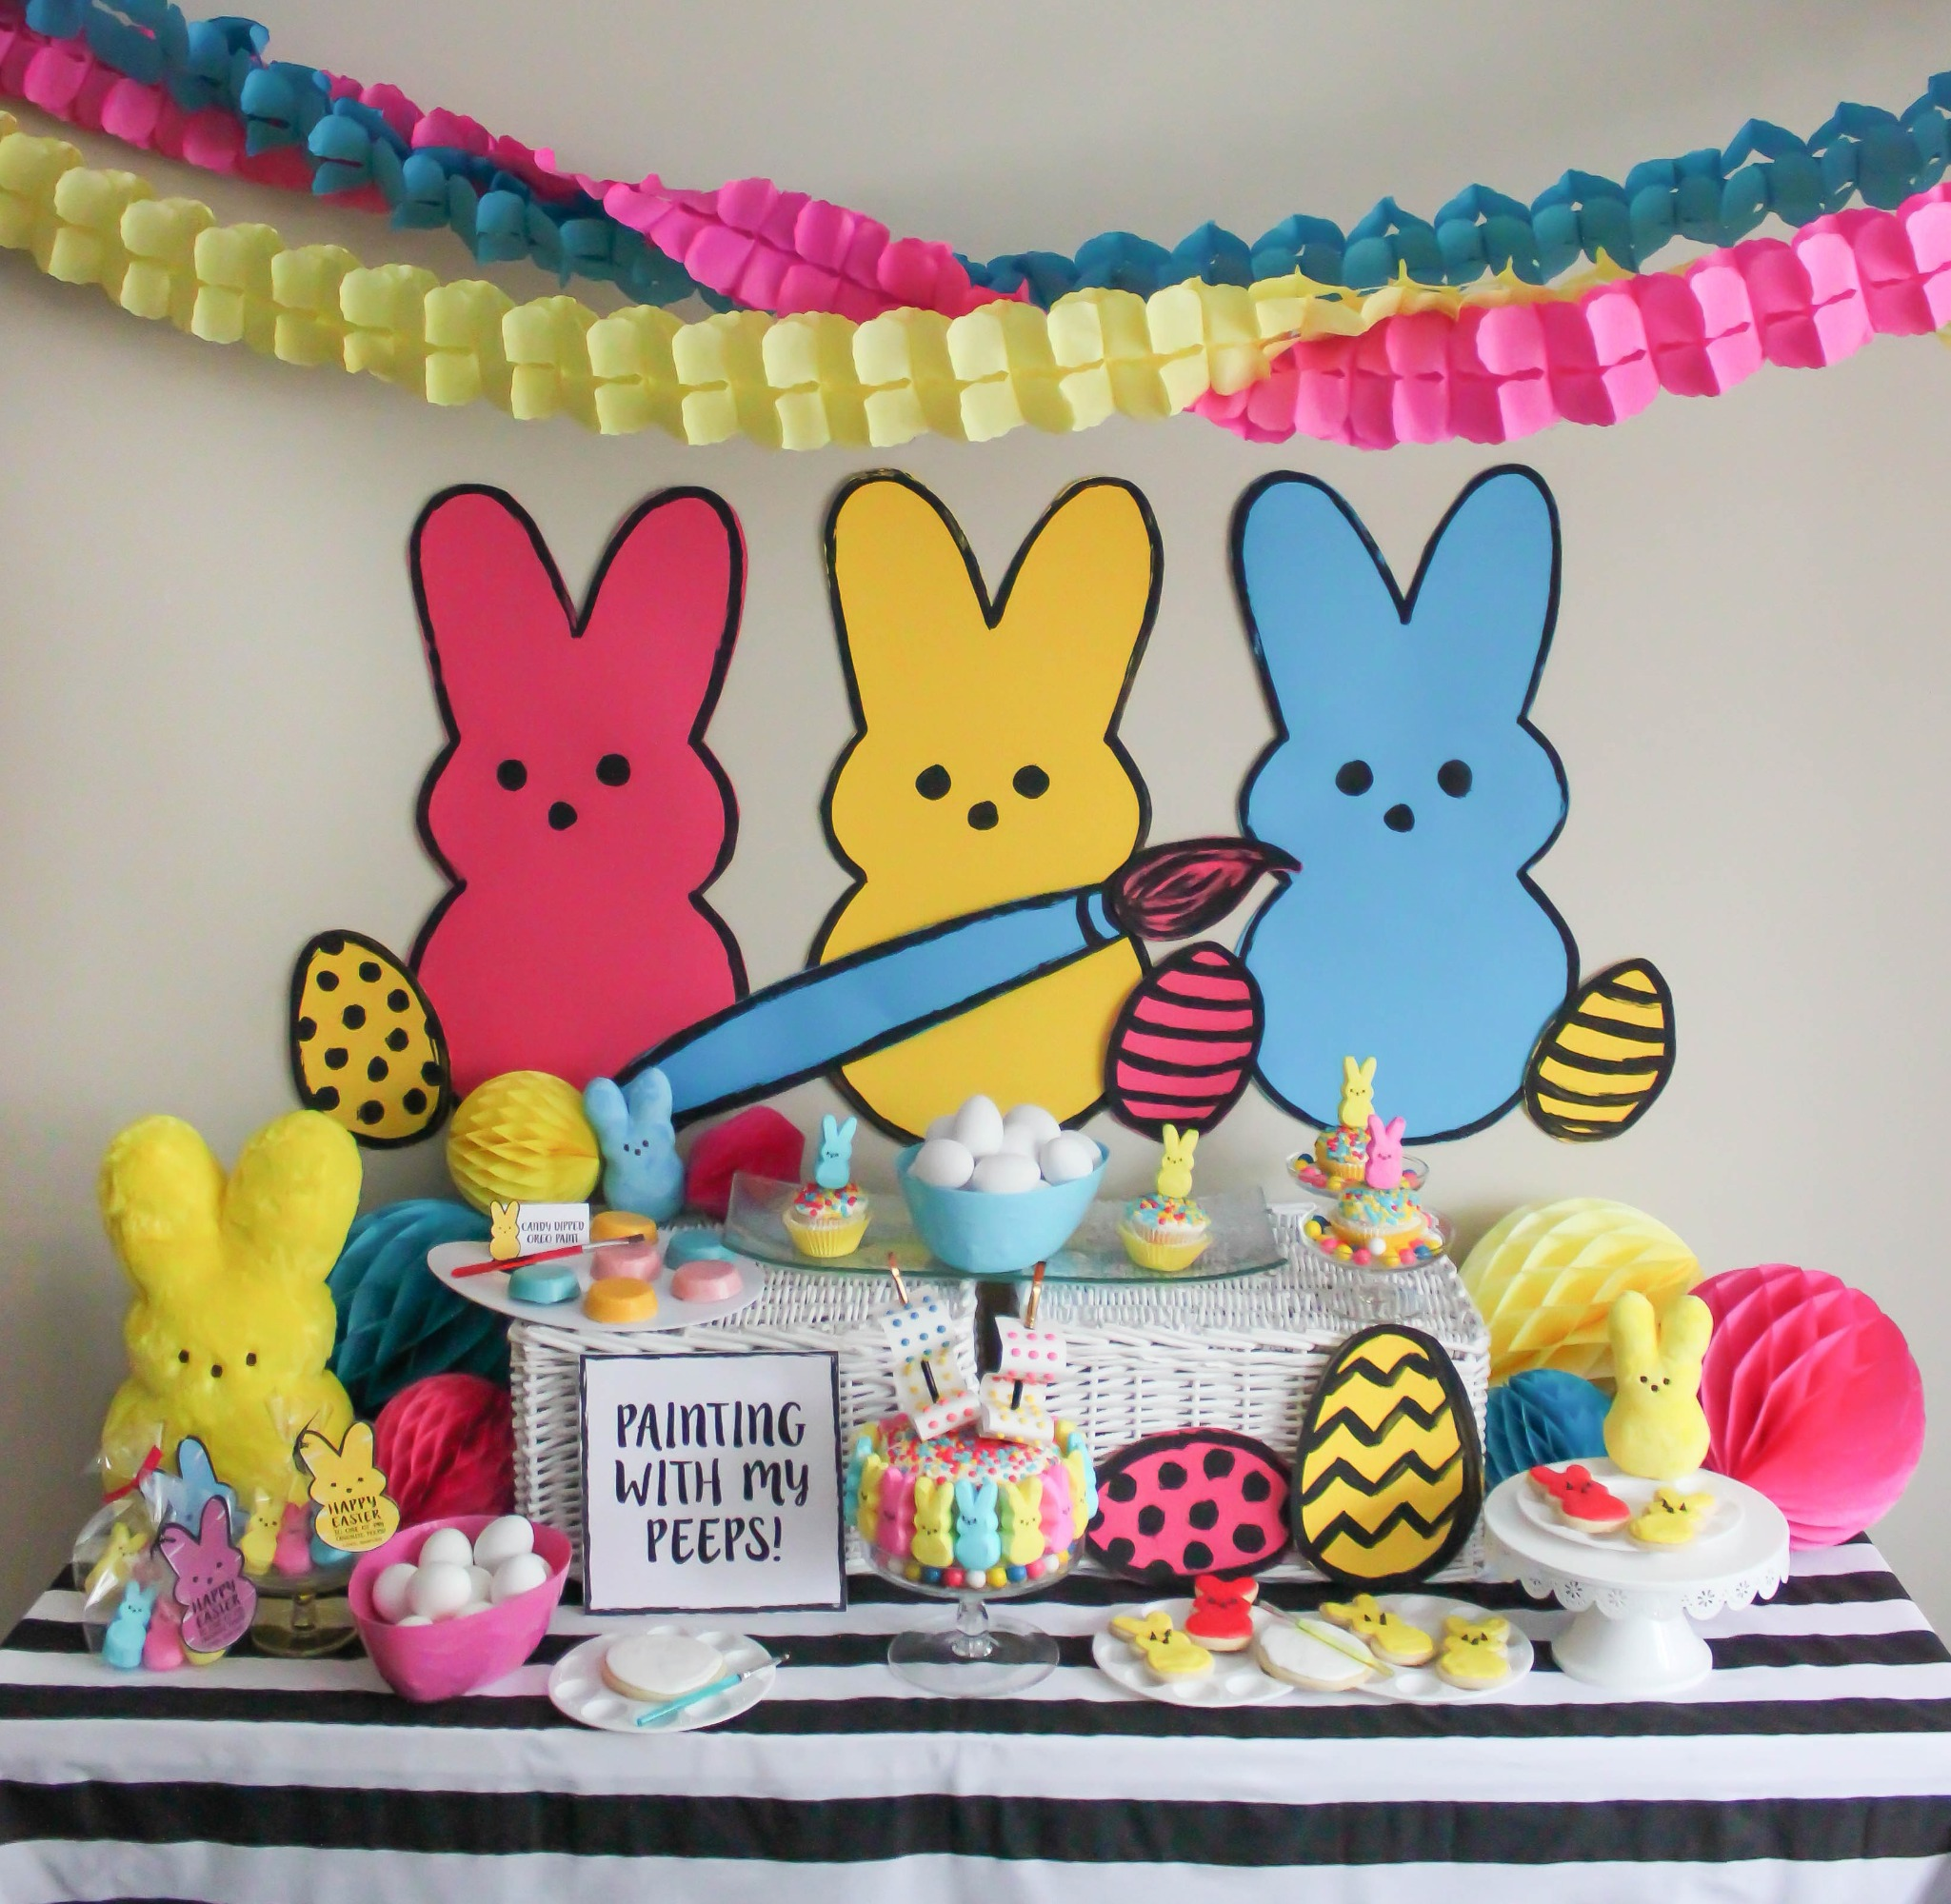 How to Style an Easter Dessert Table from Painting with my Peeps Easter Party Styled by Just Add Confetti | Black Twine